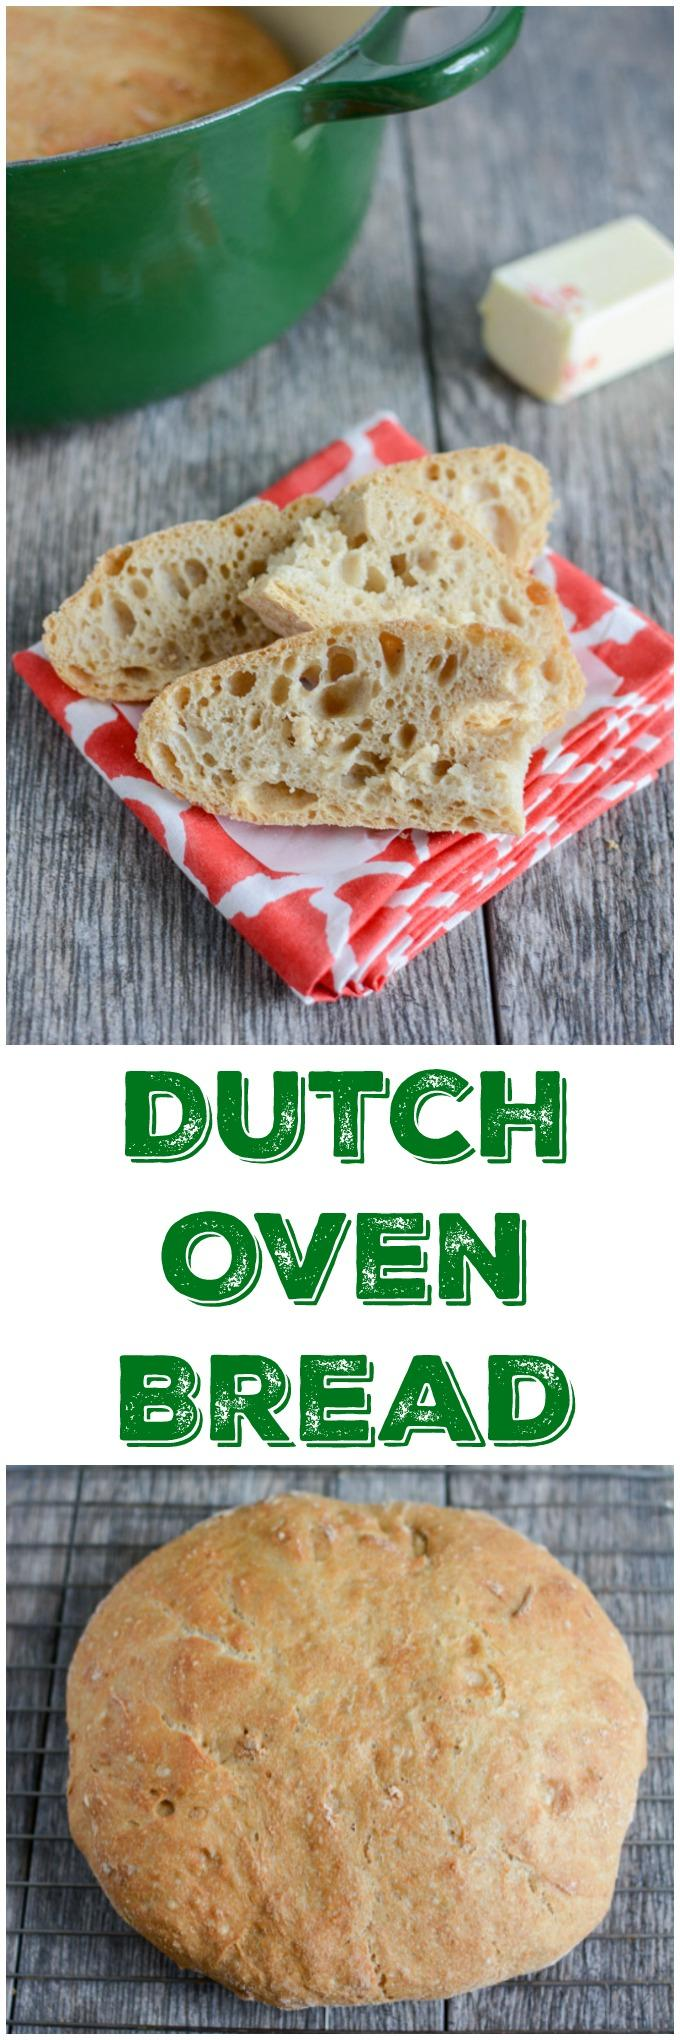 This easy recipe for Dutch Oven Bread requires minimal effort and is basically foolproof. Enjoy homemade bread made with real, healthy ingredients and no processed junk.